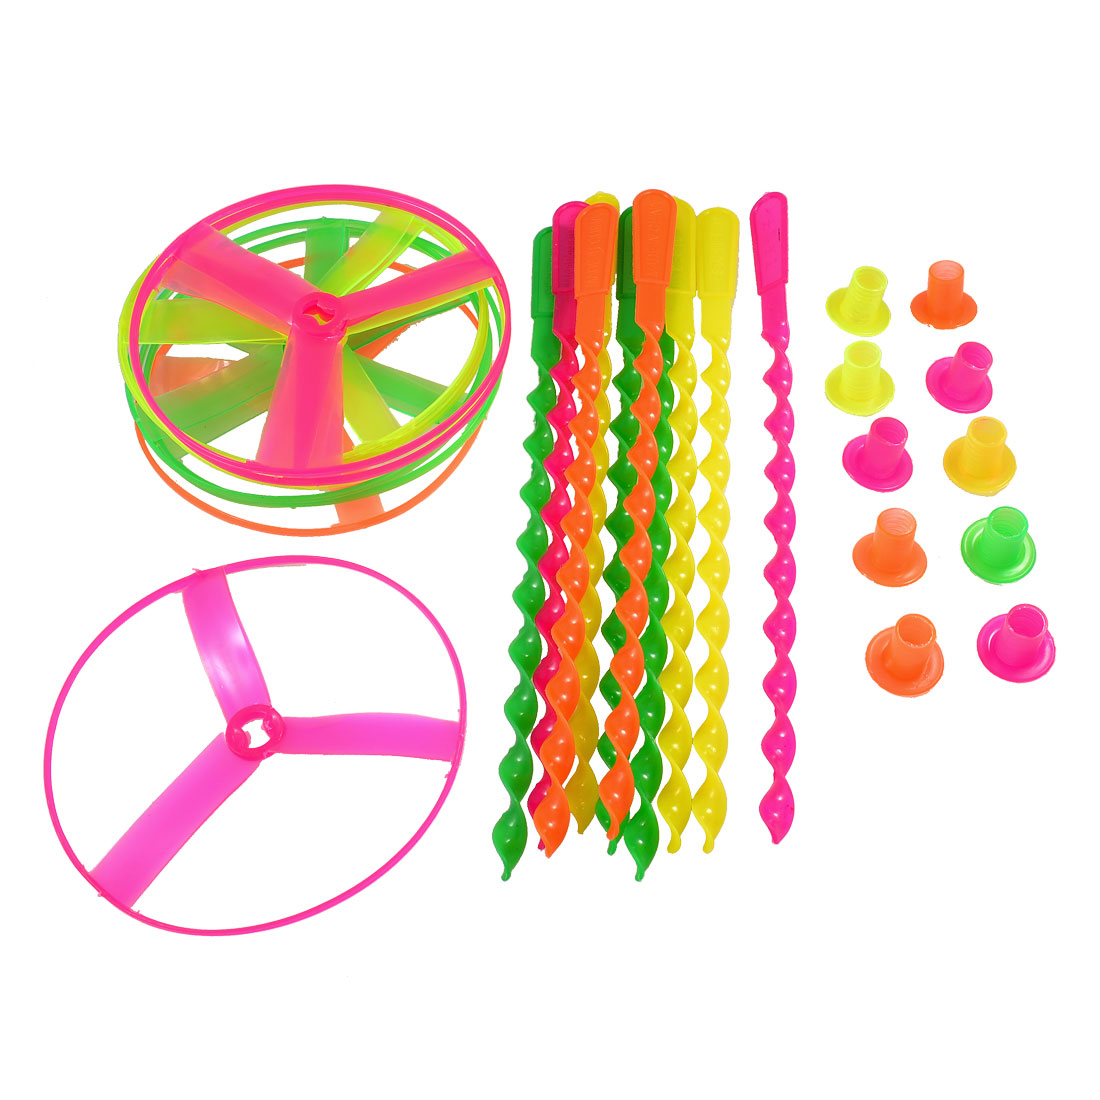 10 Pcs Colorful Plastic Spinning Shooter Flying Disc Toys Plaything for Children